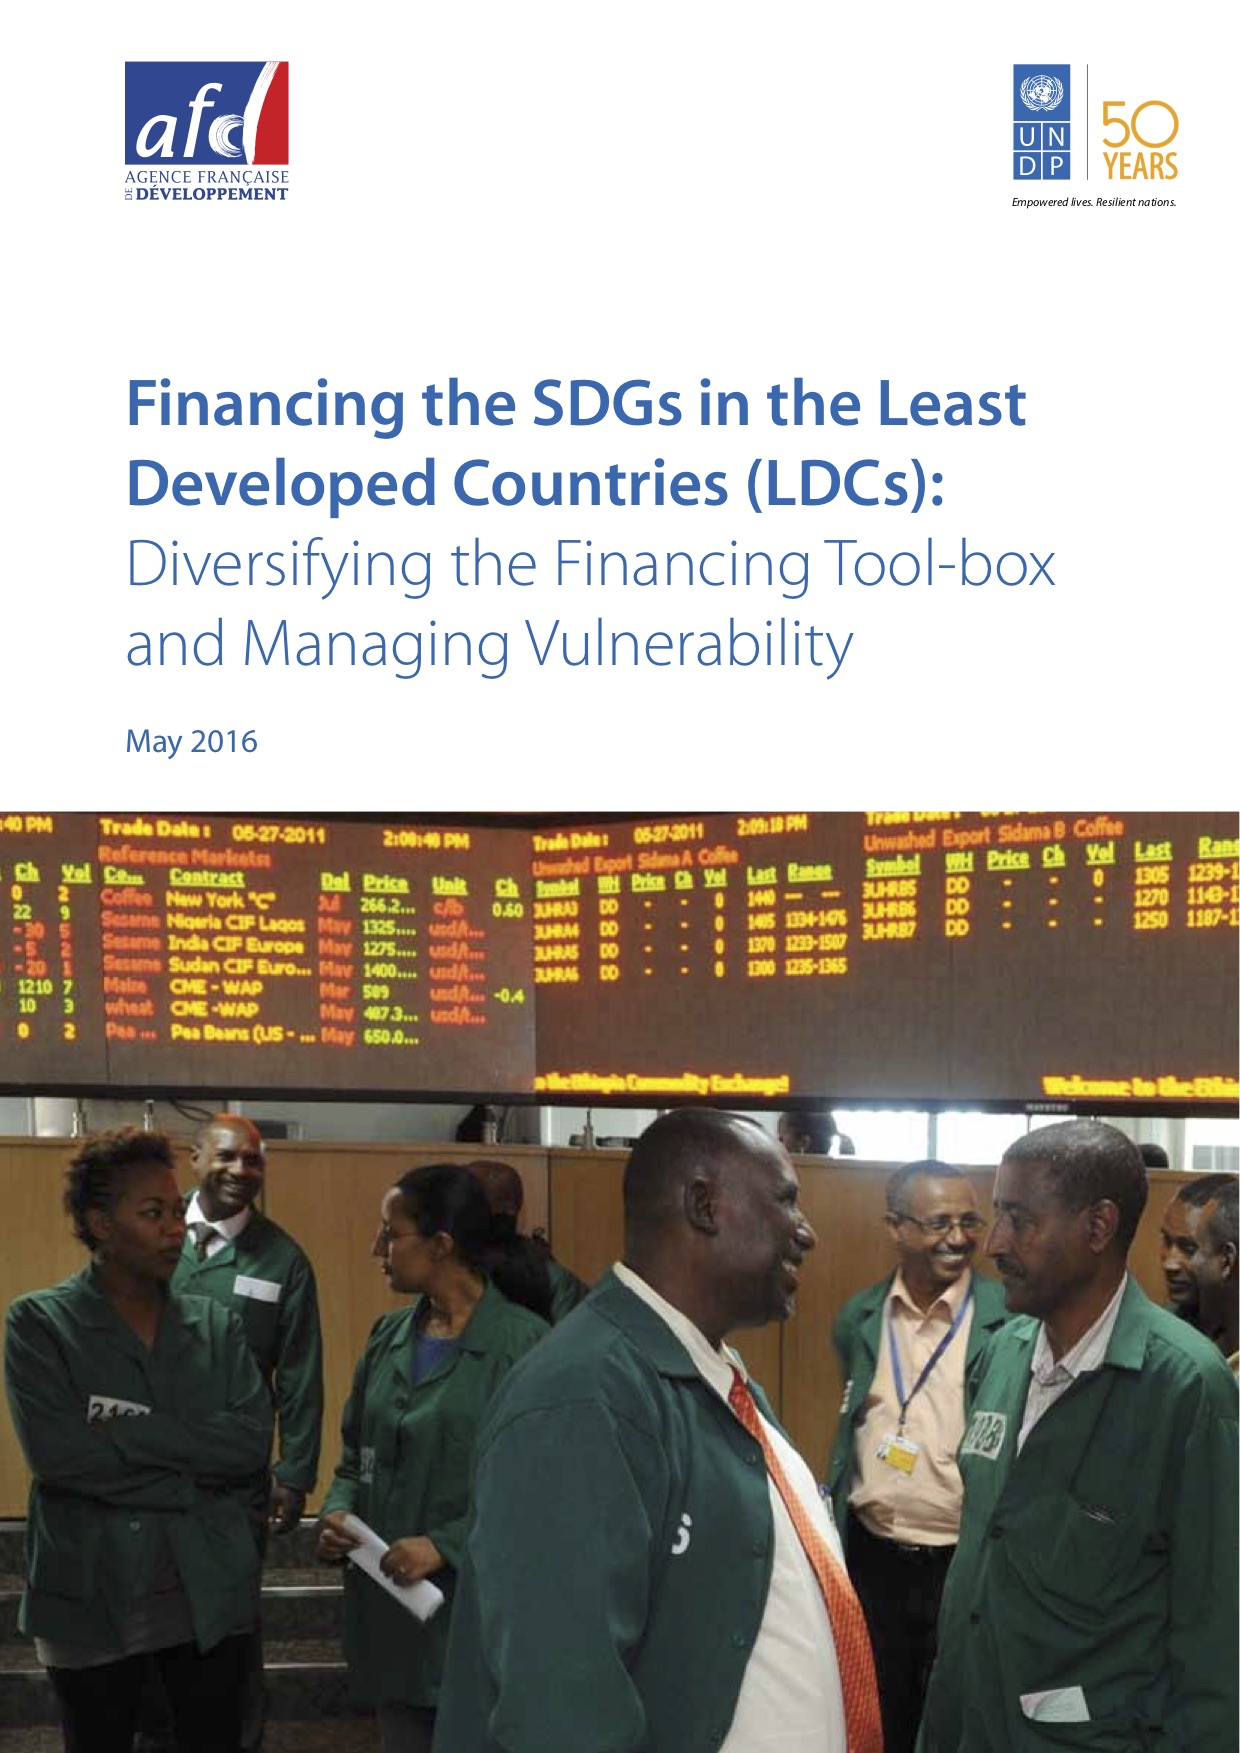 Financing the SDGs in the Least Developed Countries (LDCs): Diversifying the Financing Tool-box and Managing Vulnerability